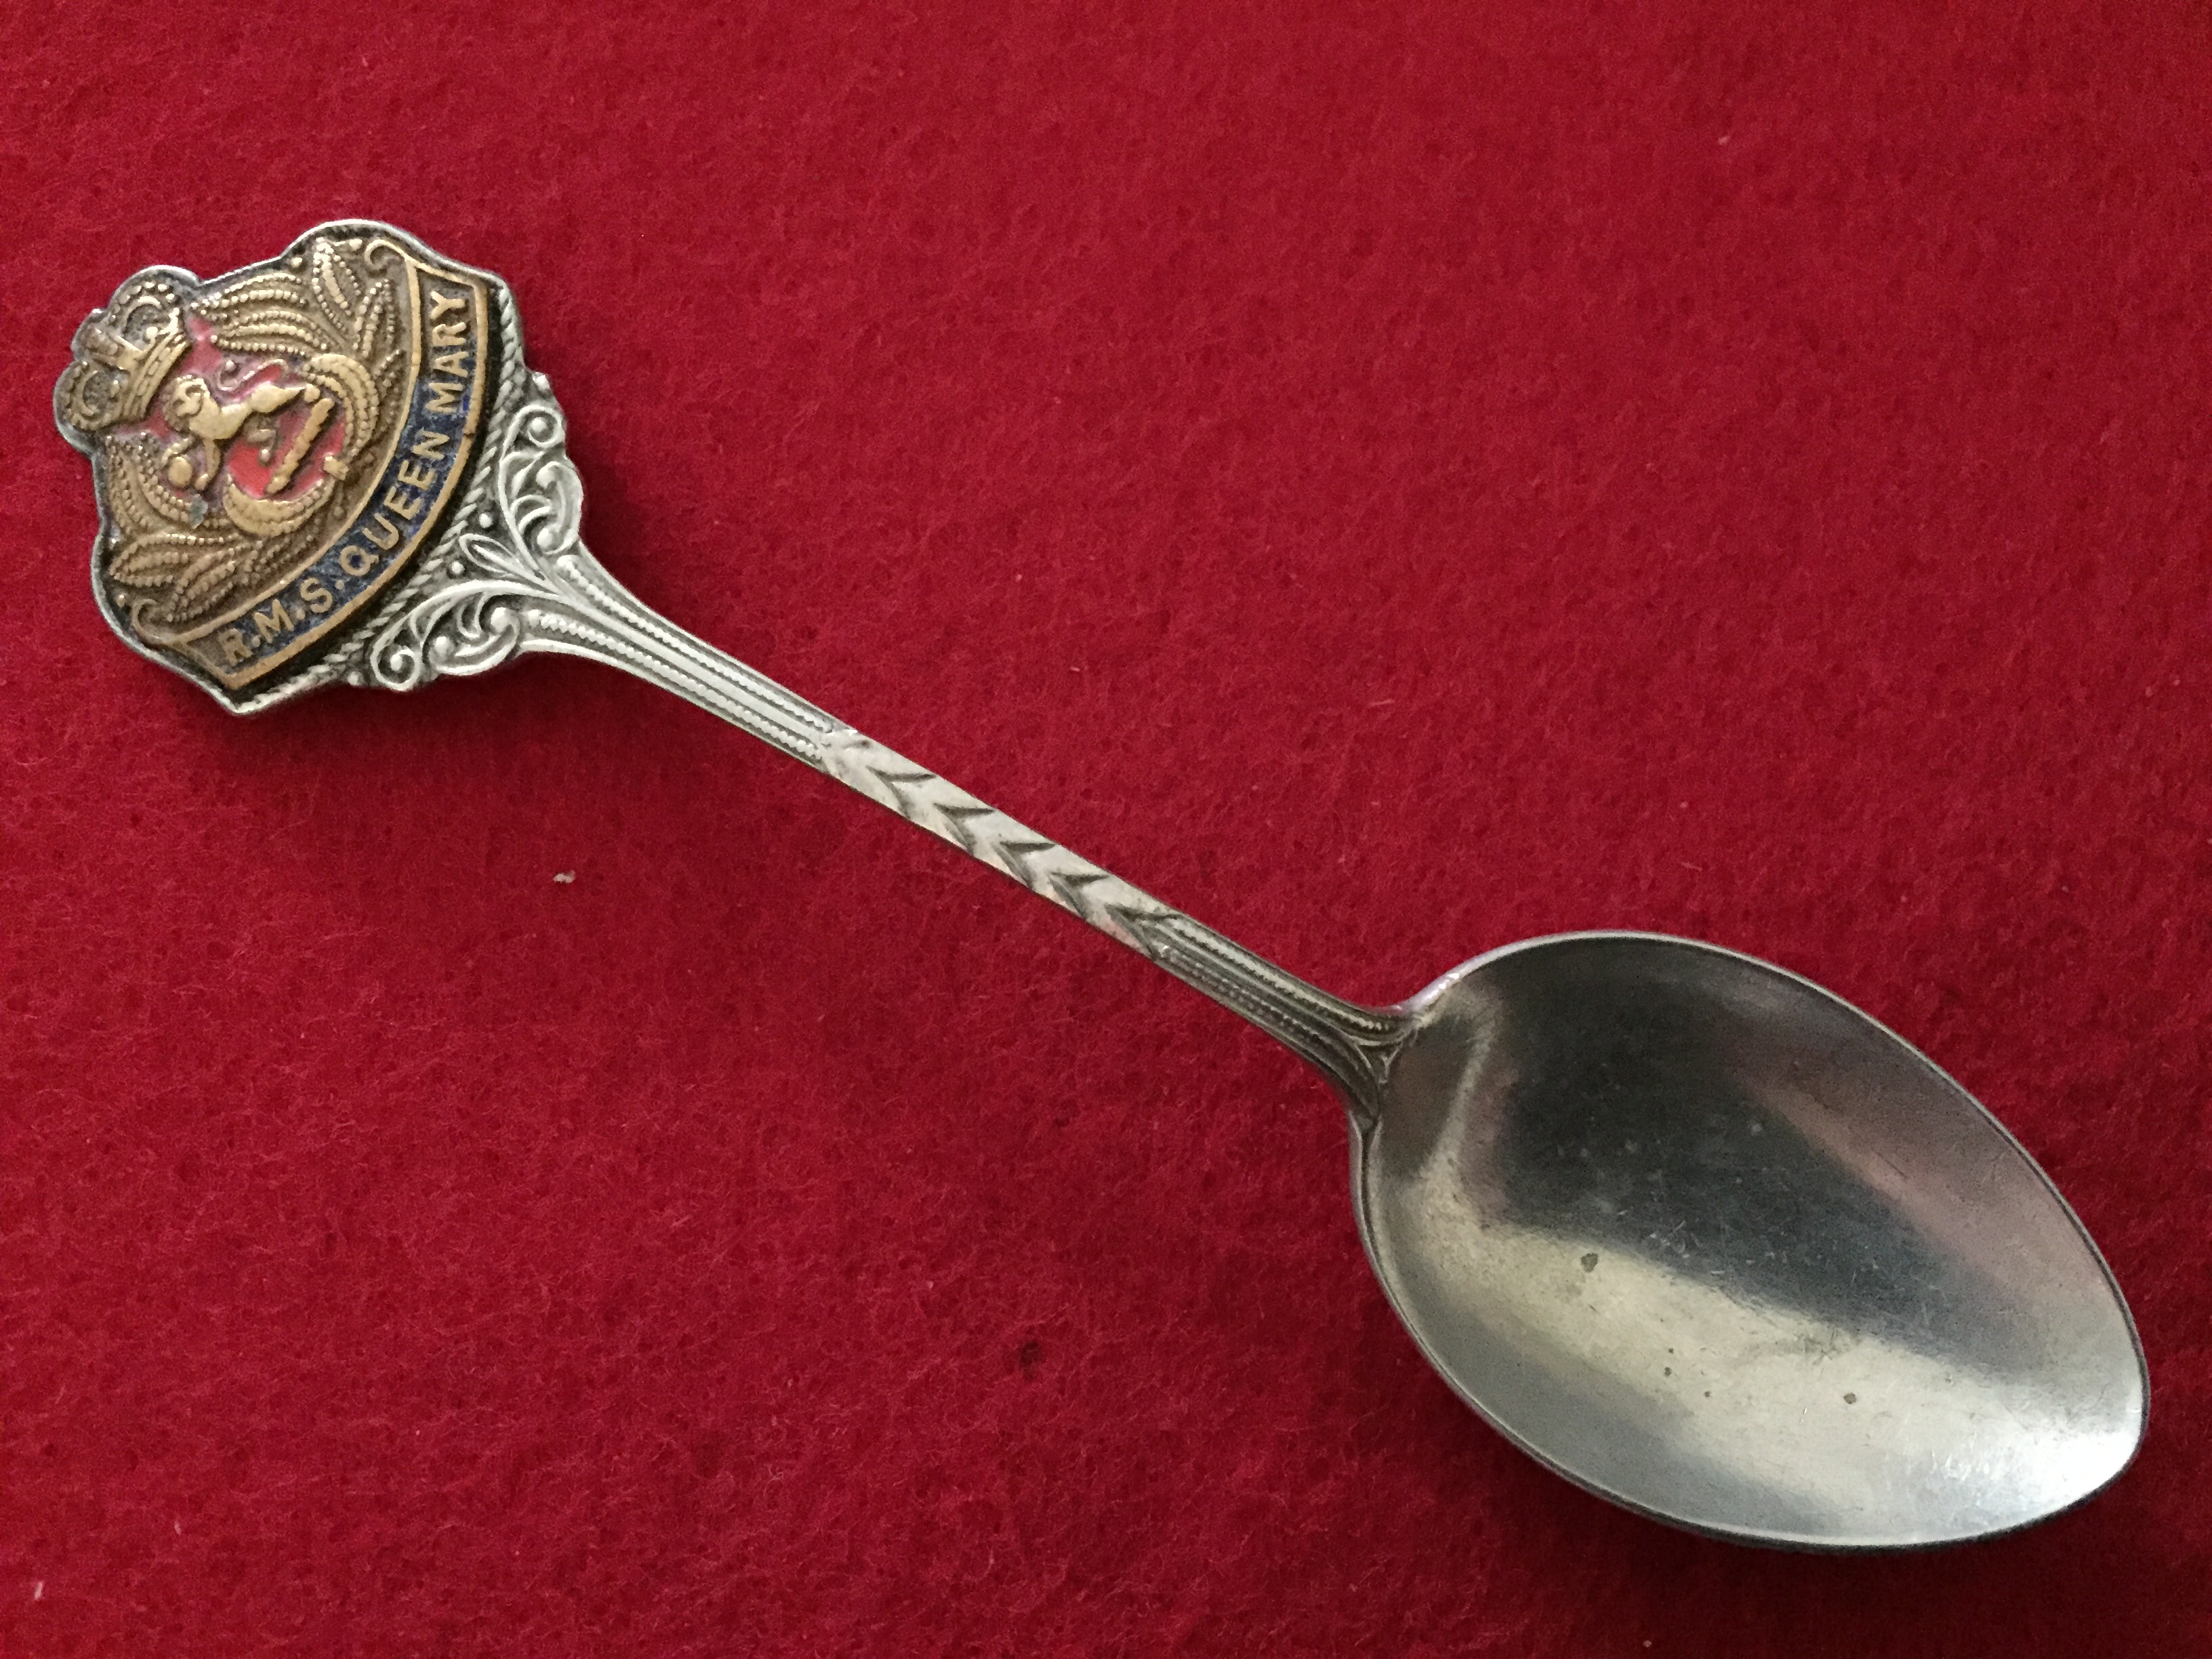 SOUVENIR SPOON FROM THE FAMOUS OLD VESSEL THE RMS QUEEN MARY